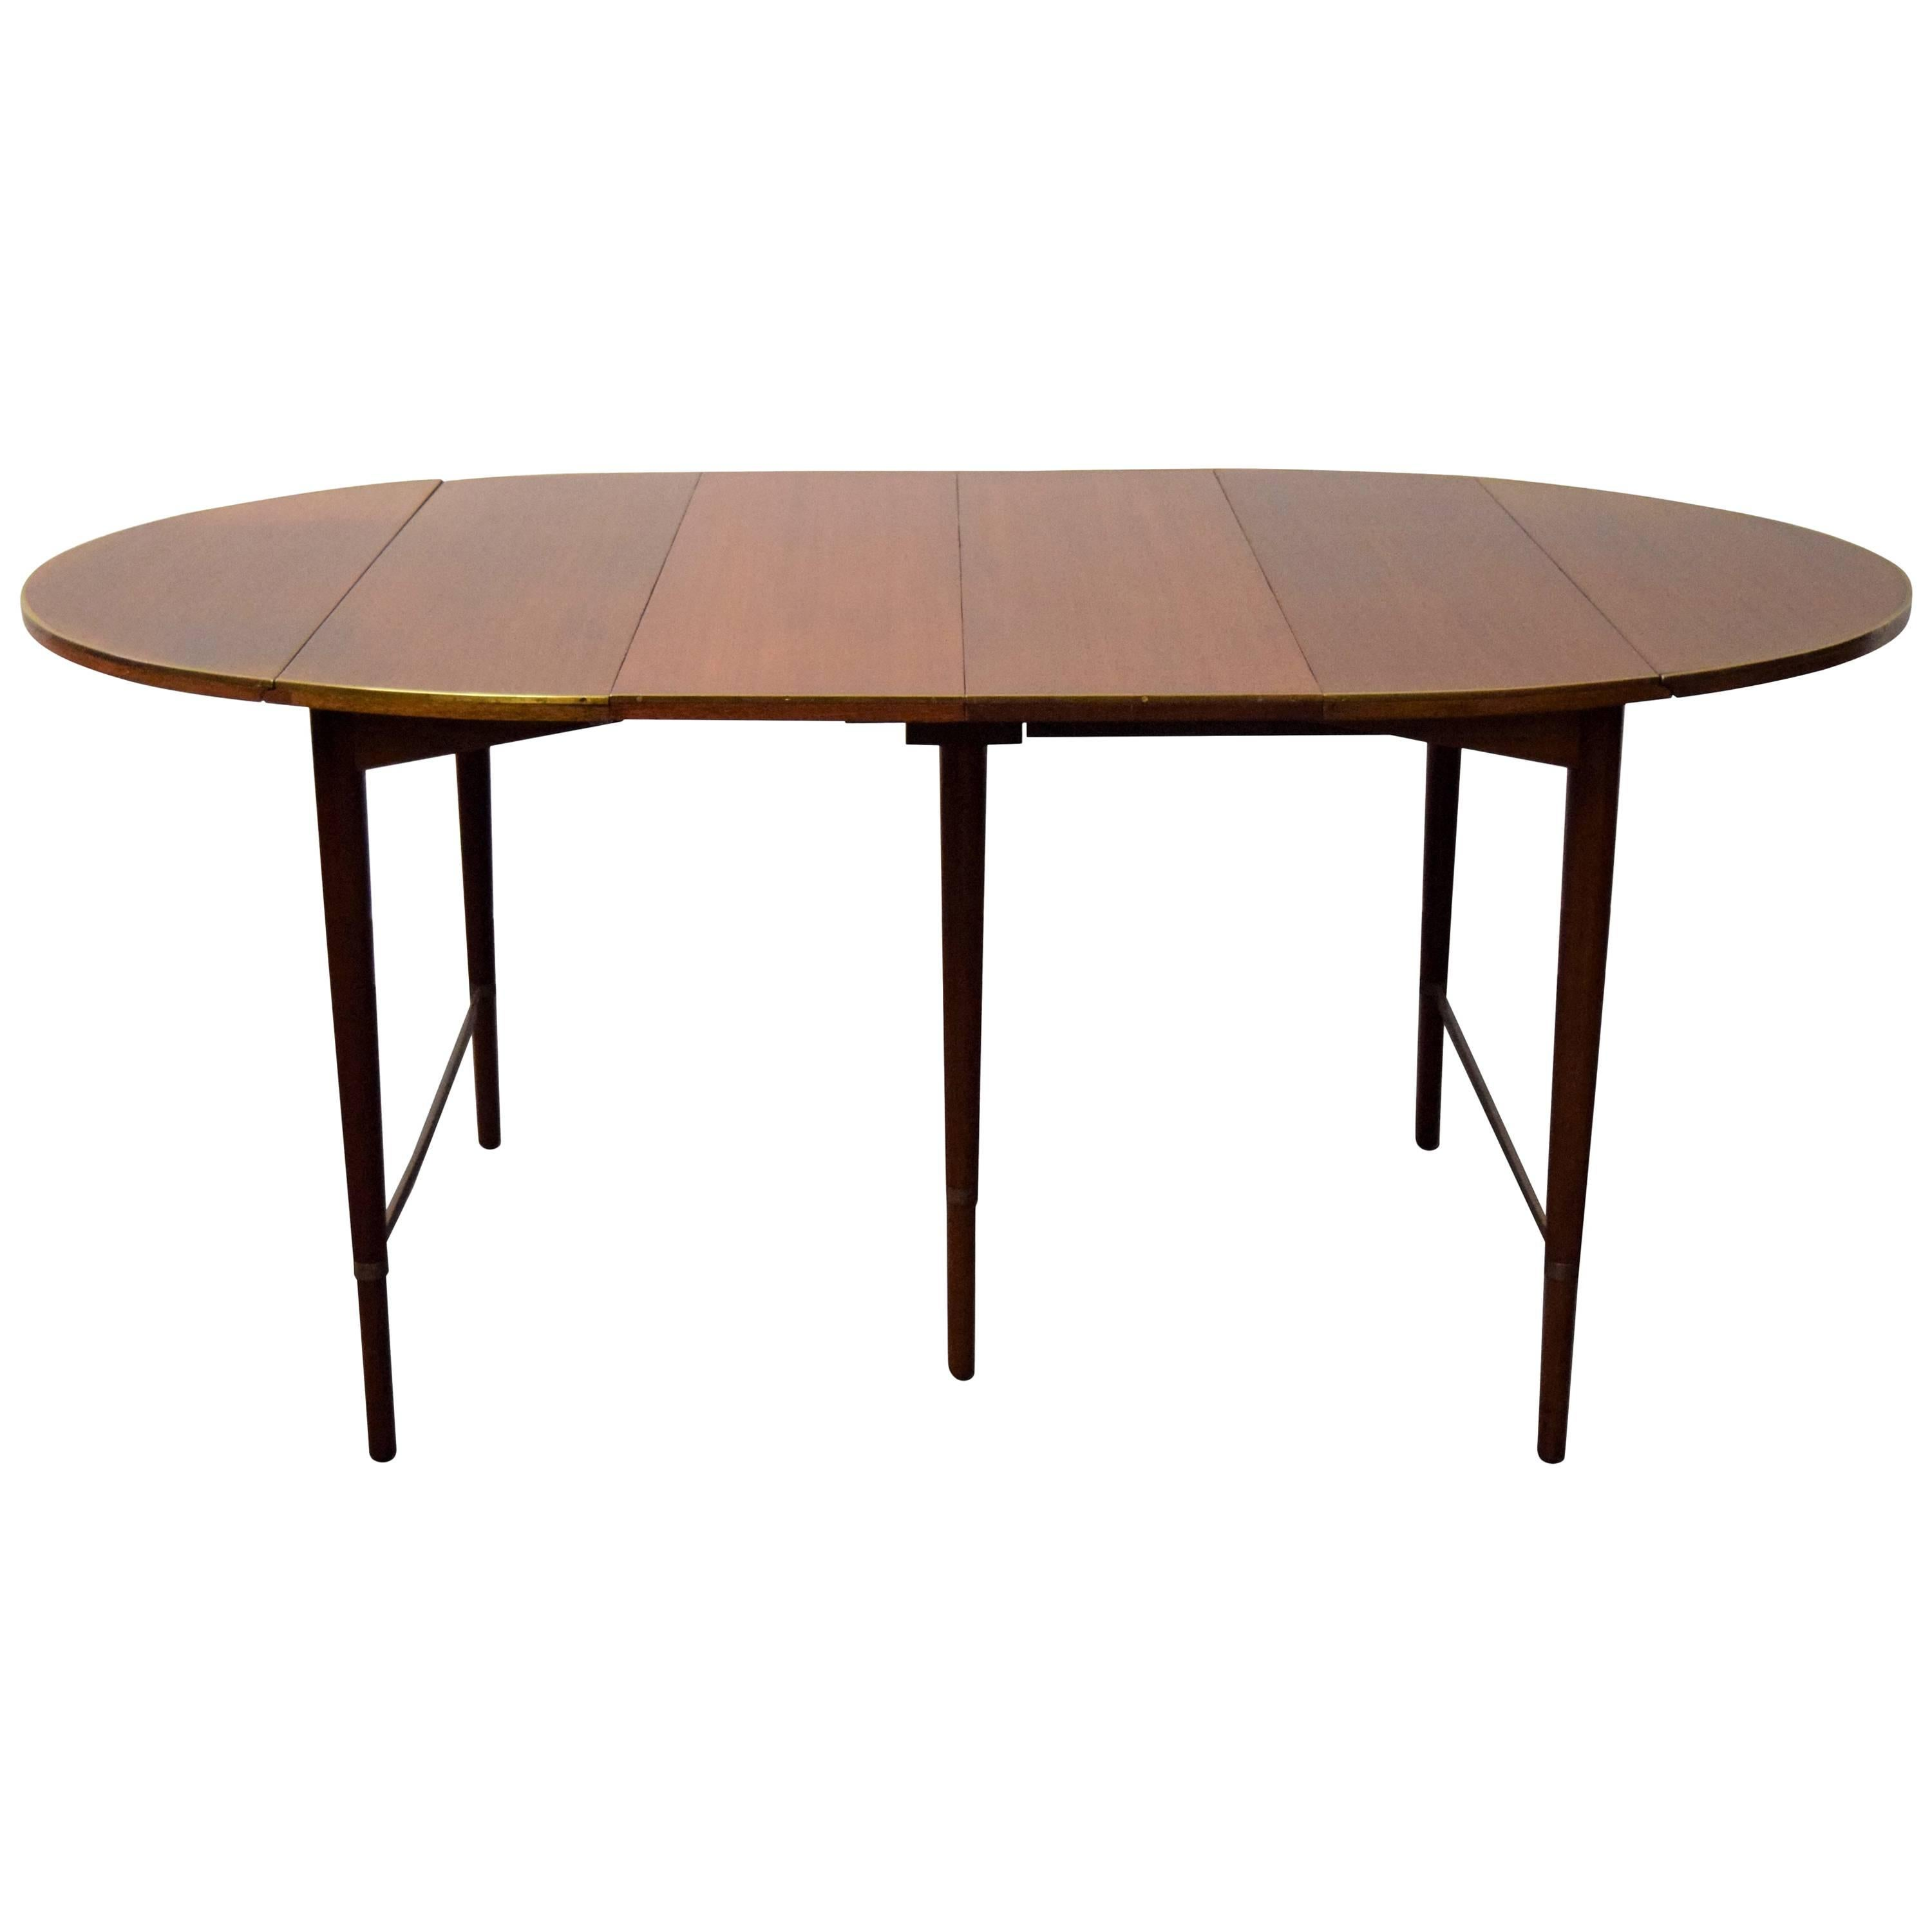 Charming Paul McCobb Connoisseur Collection Walnut And Brass Dining Table